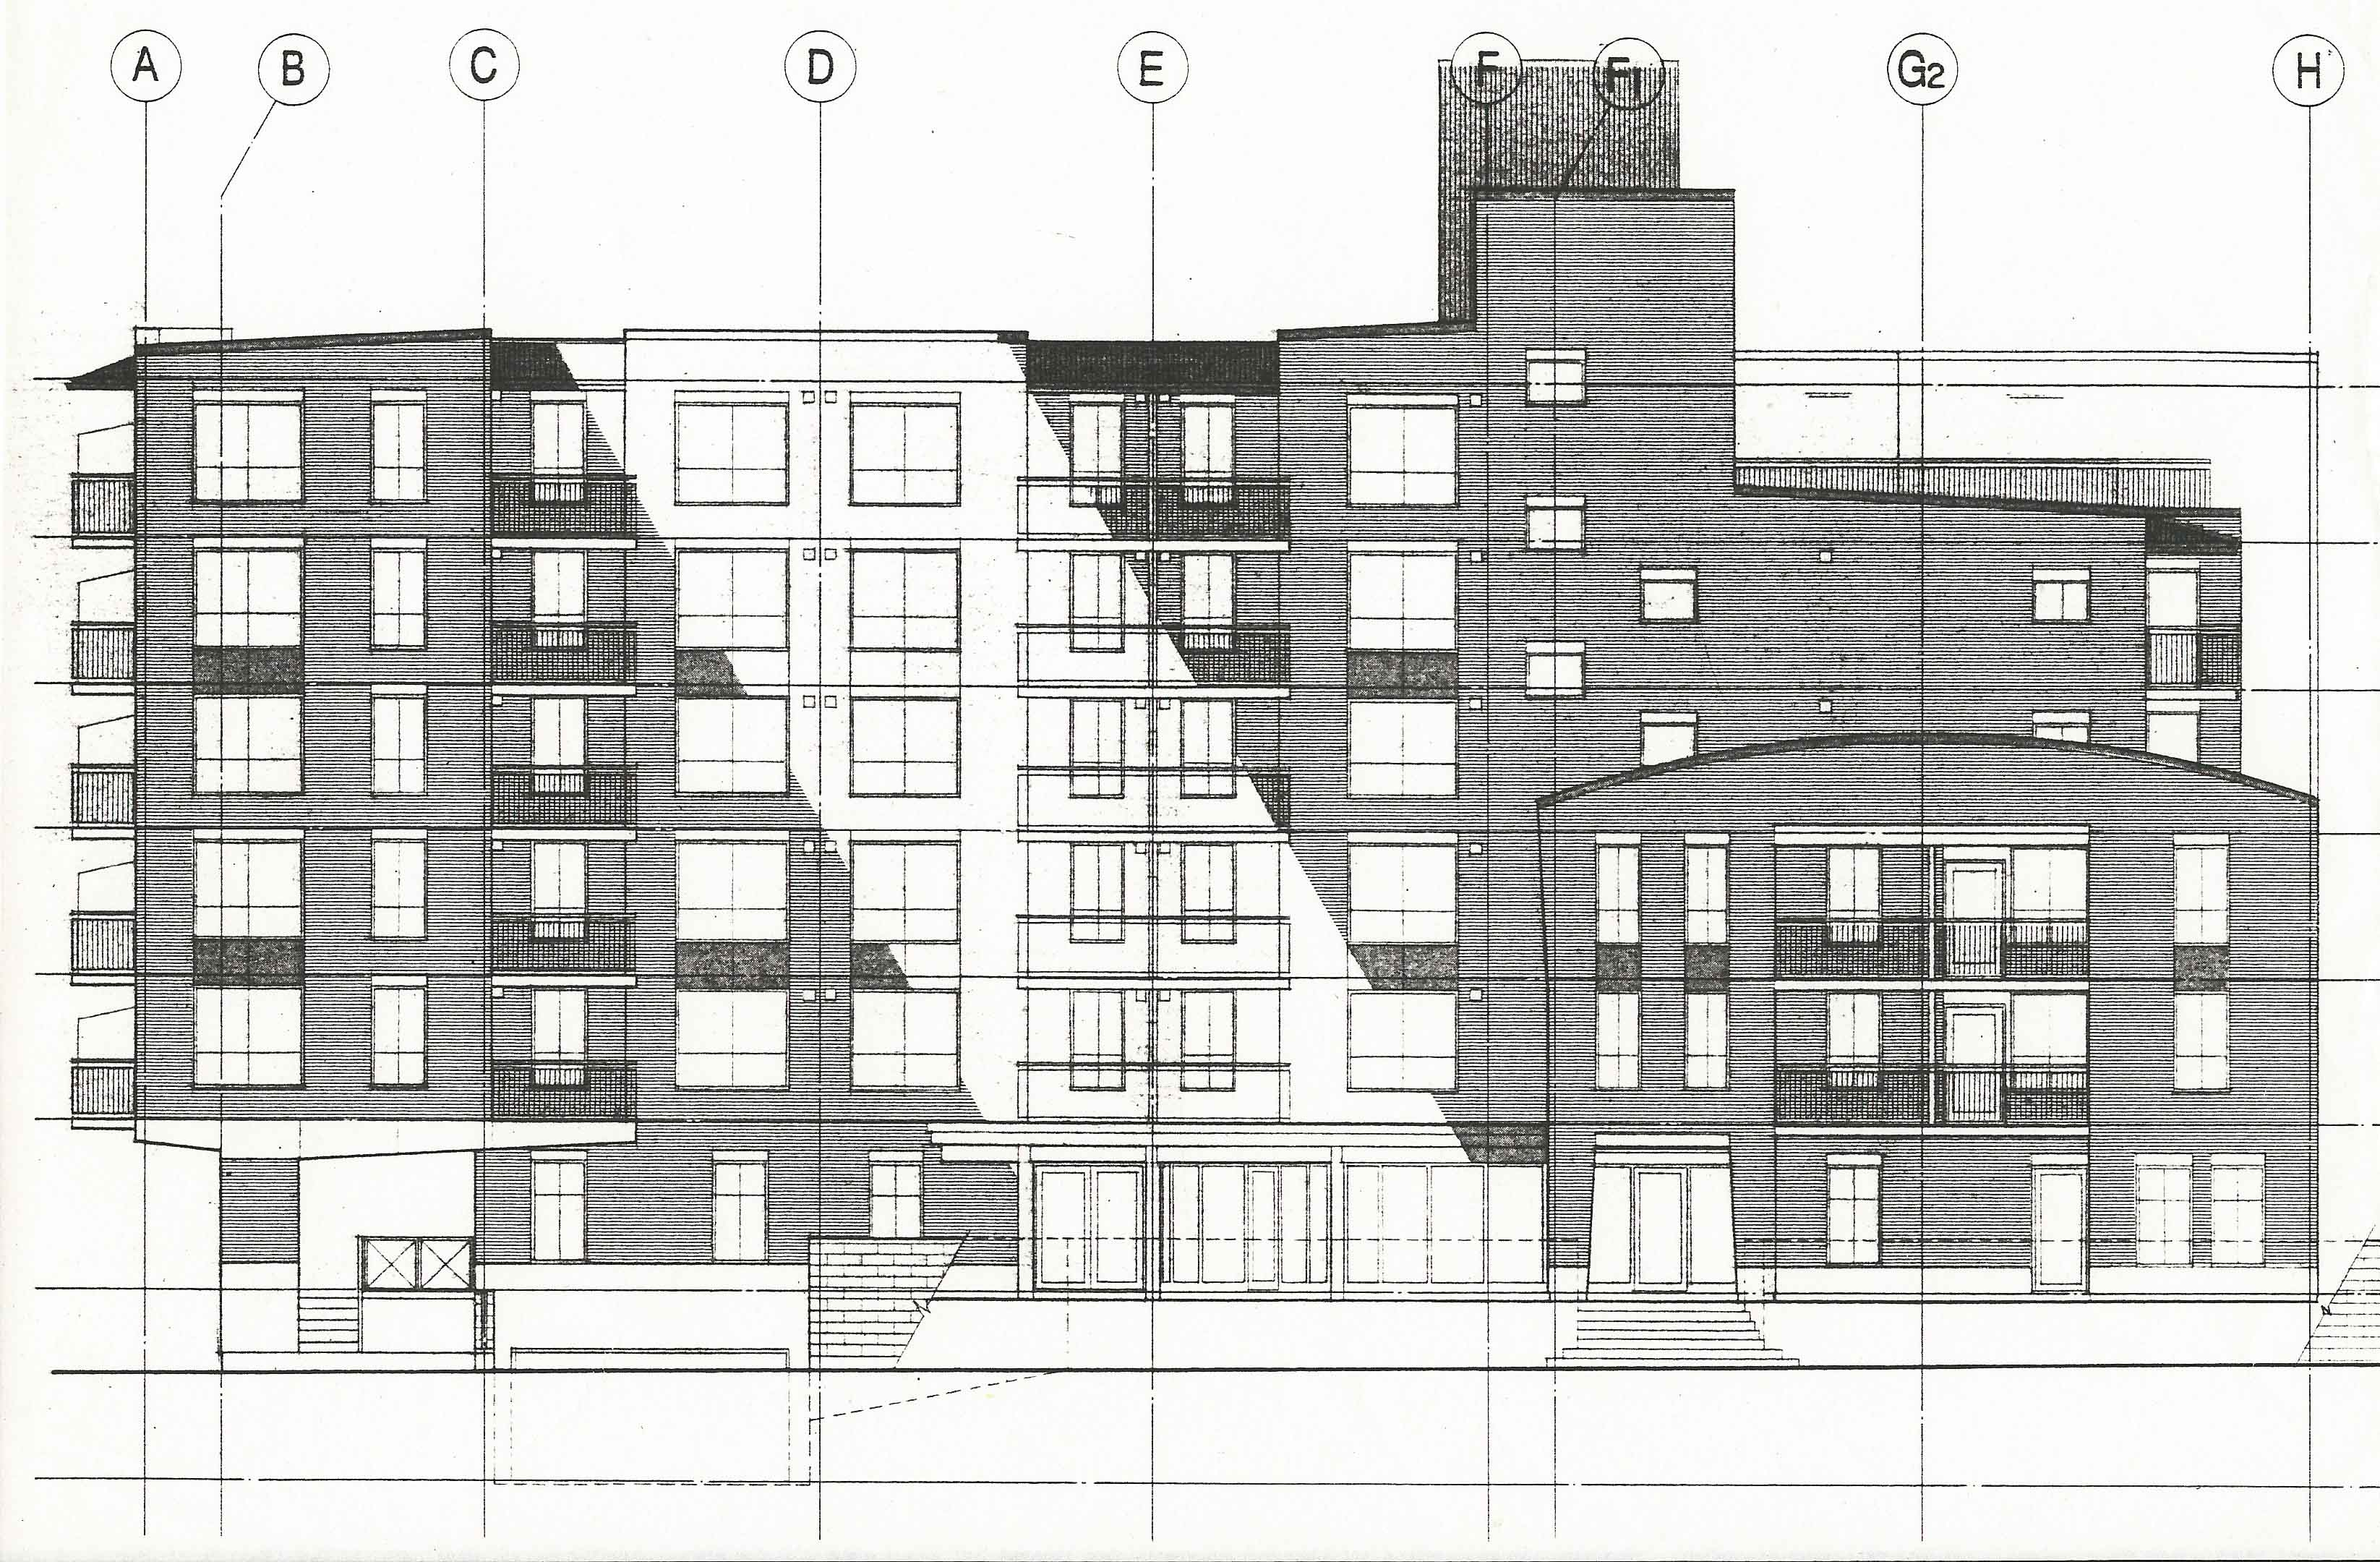 Emmaus Place street elevation